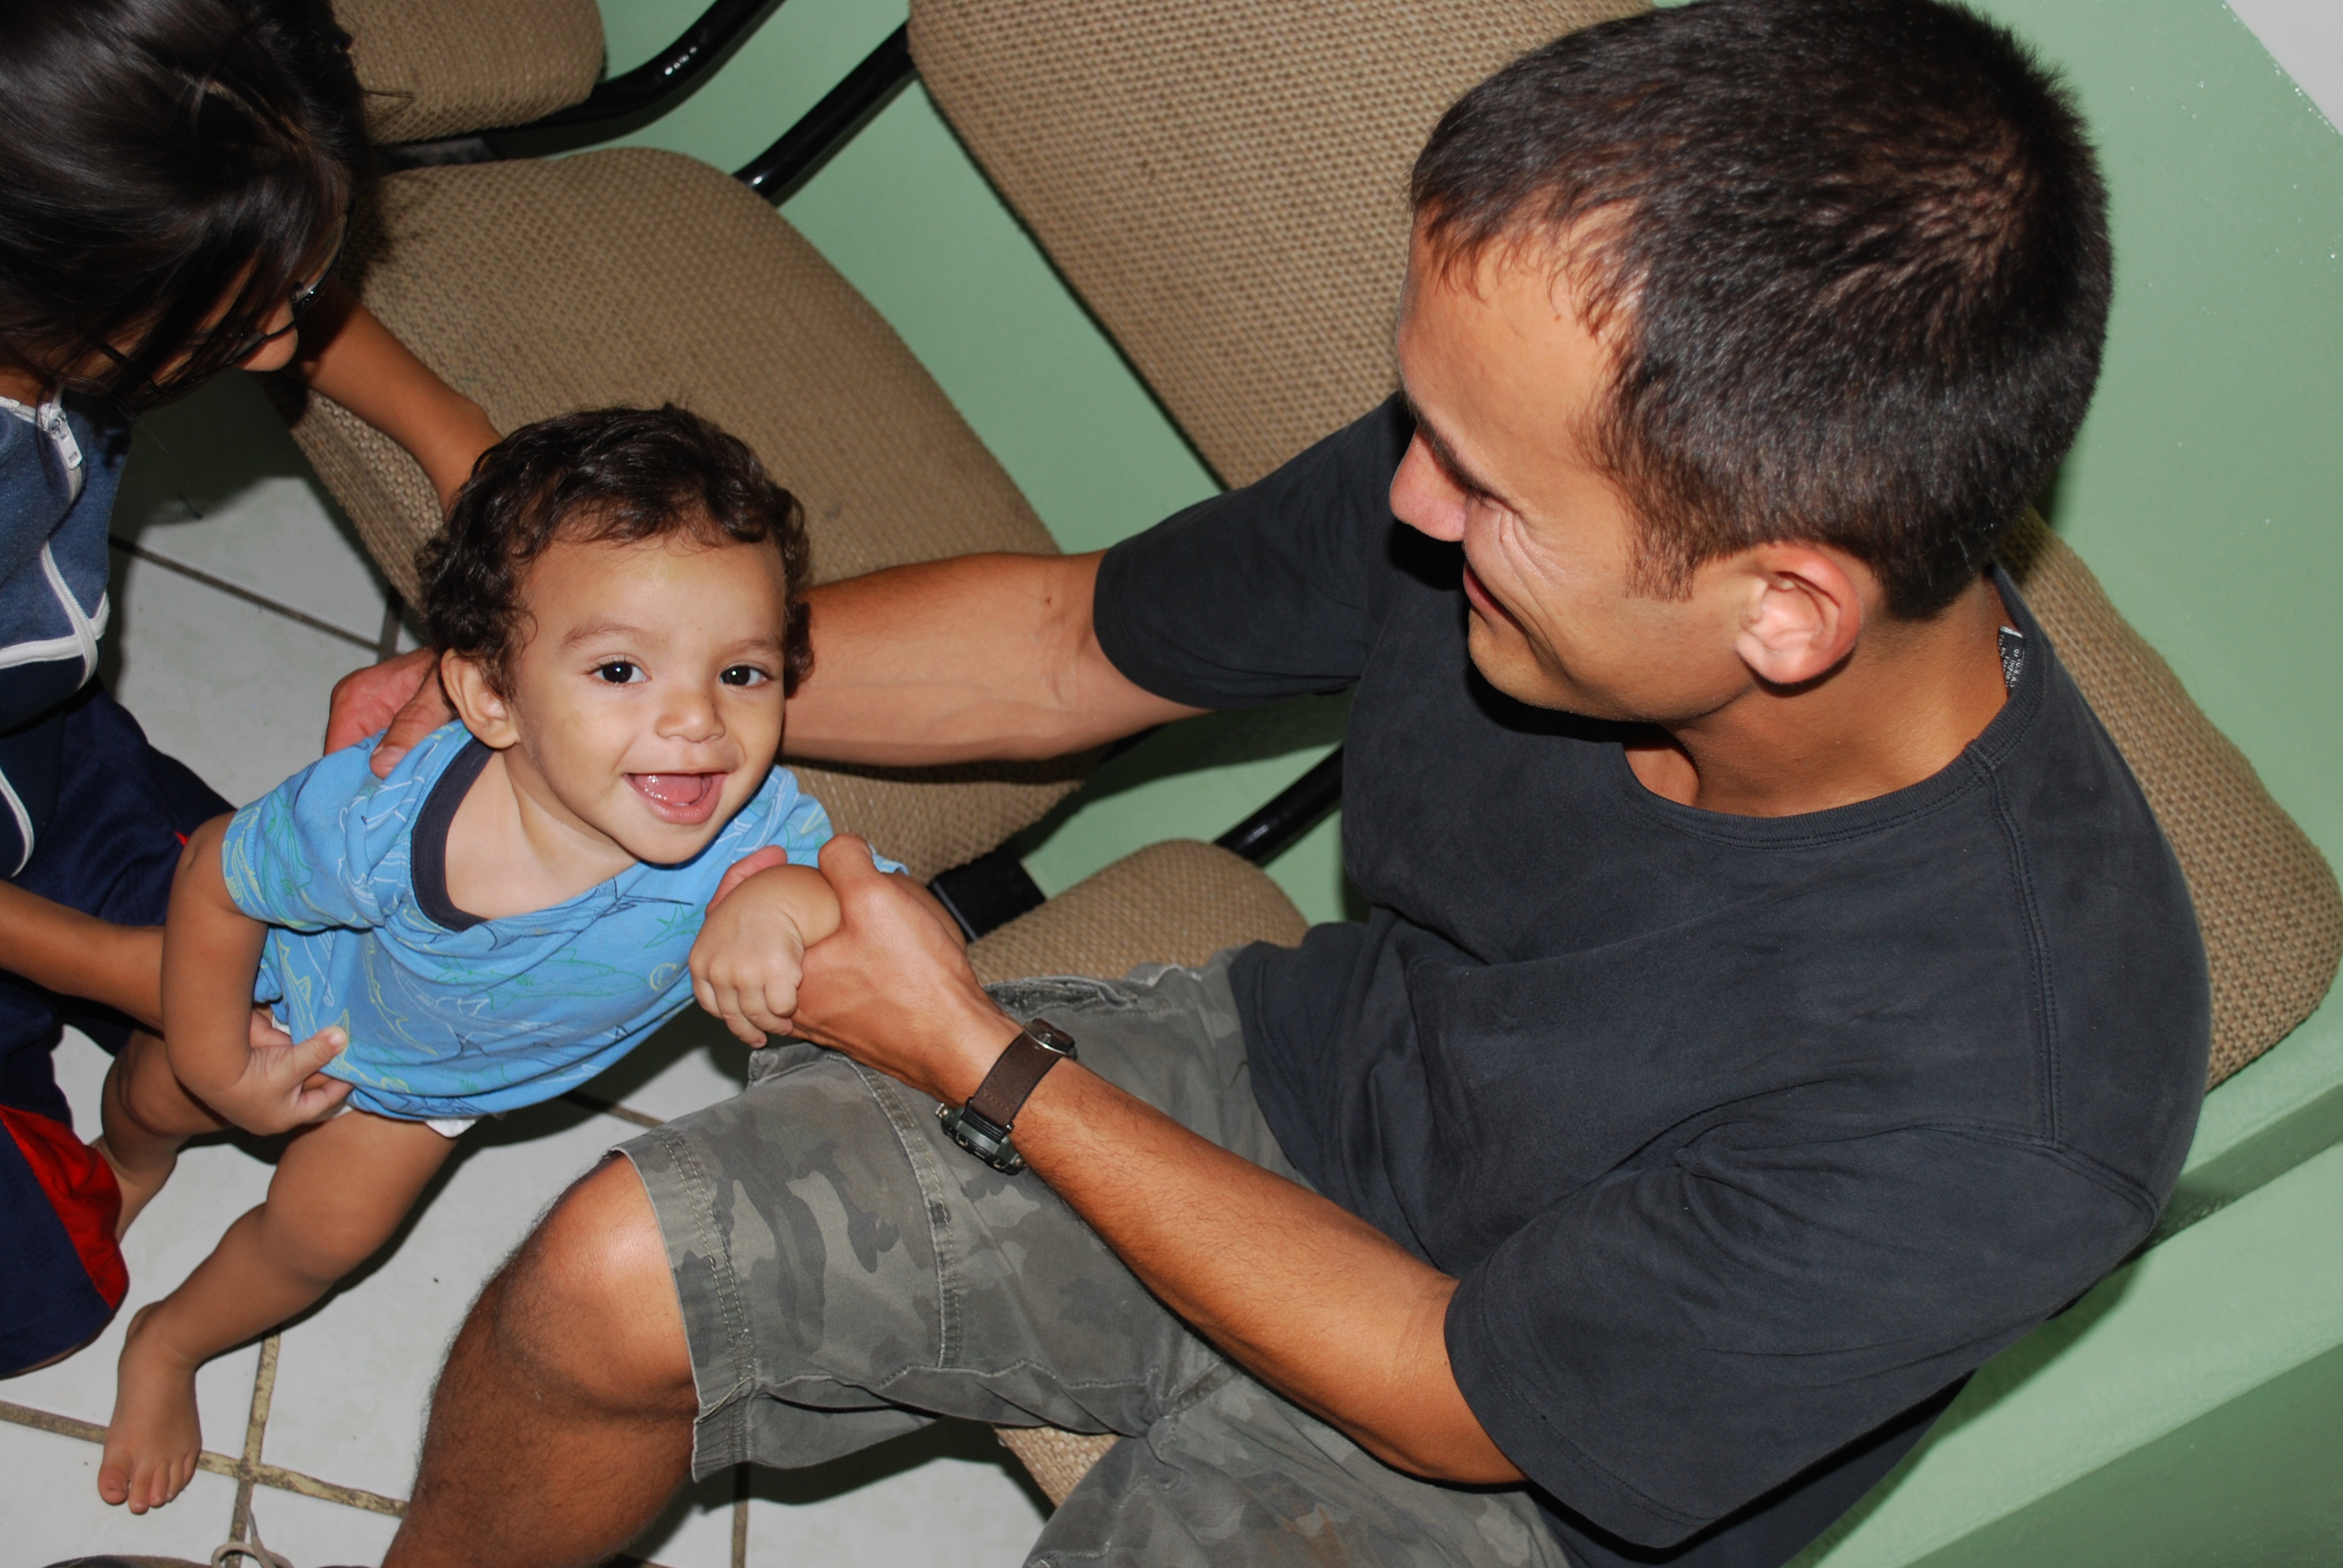 Chris Ramos, spending time with the children at Del Norte Children's Home